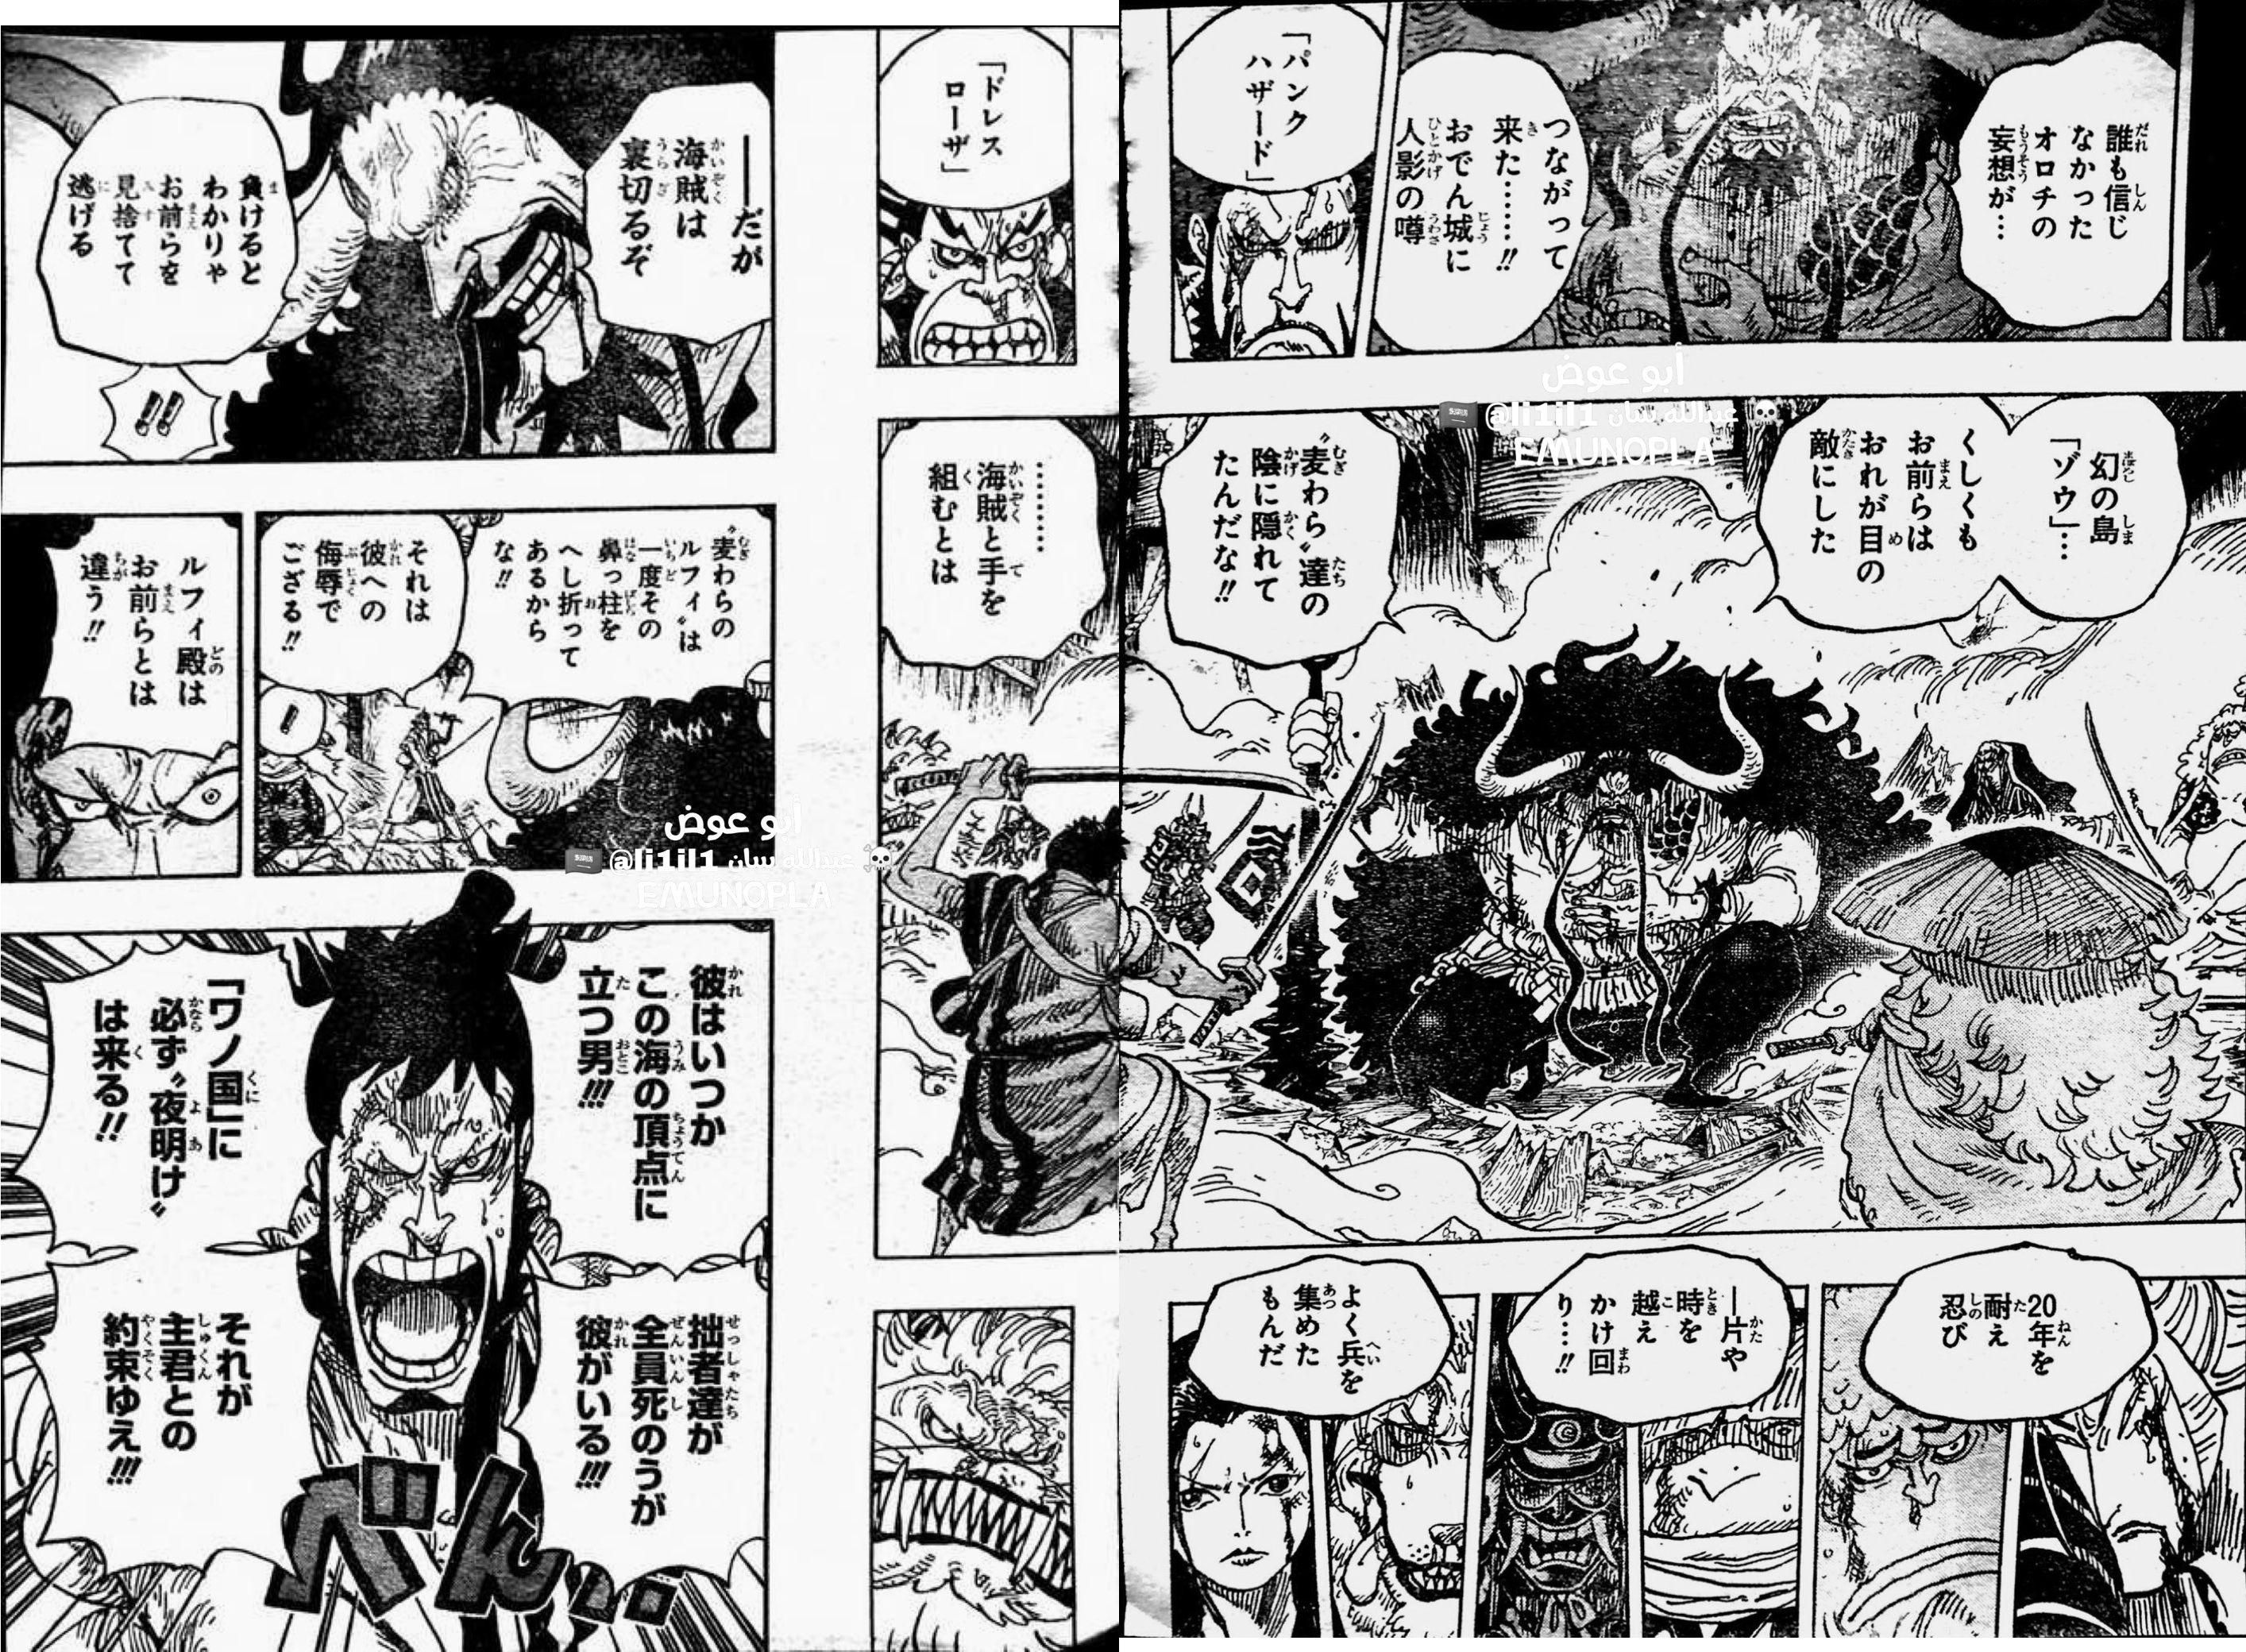 Finally One Piece Chapter 988 Manga Release Date Spoiler Raw Scans Storyline Recap Much More To Know About Dc News